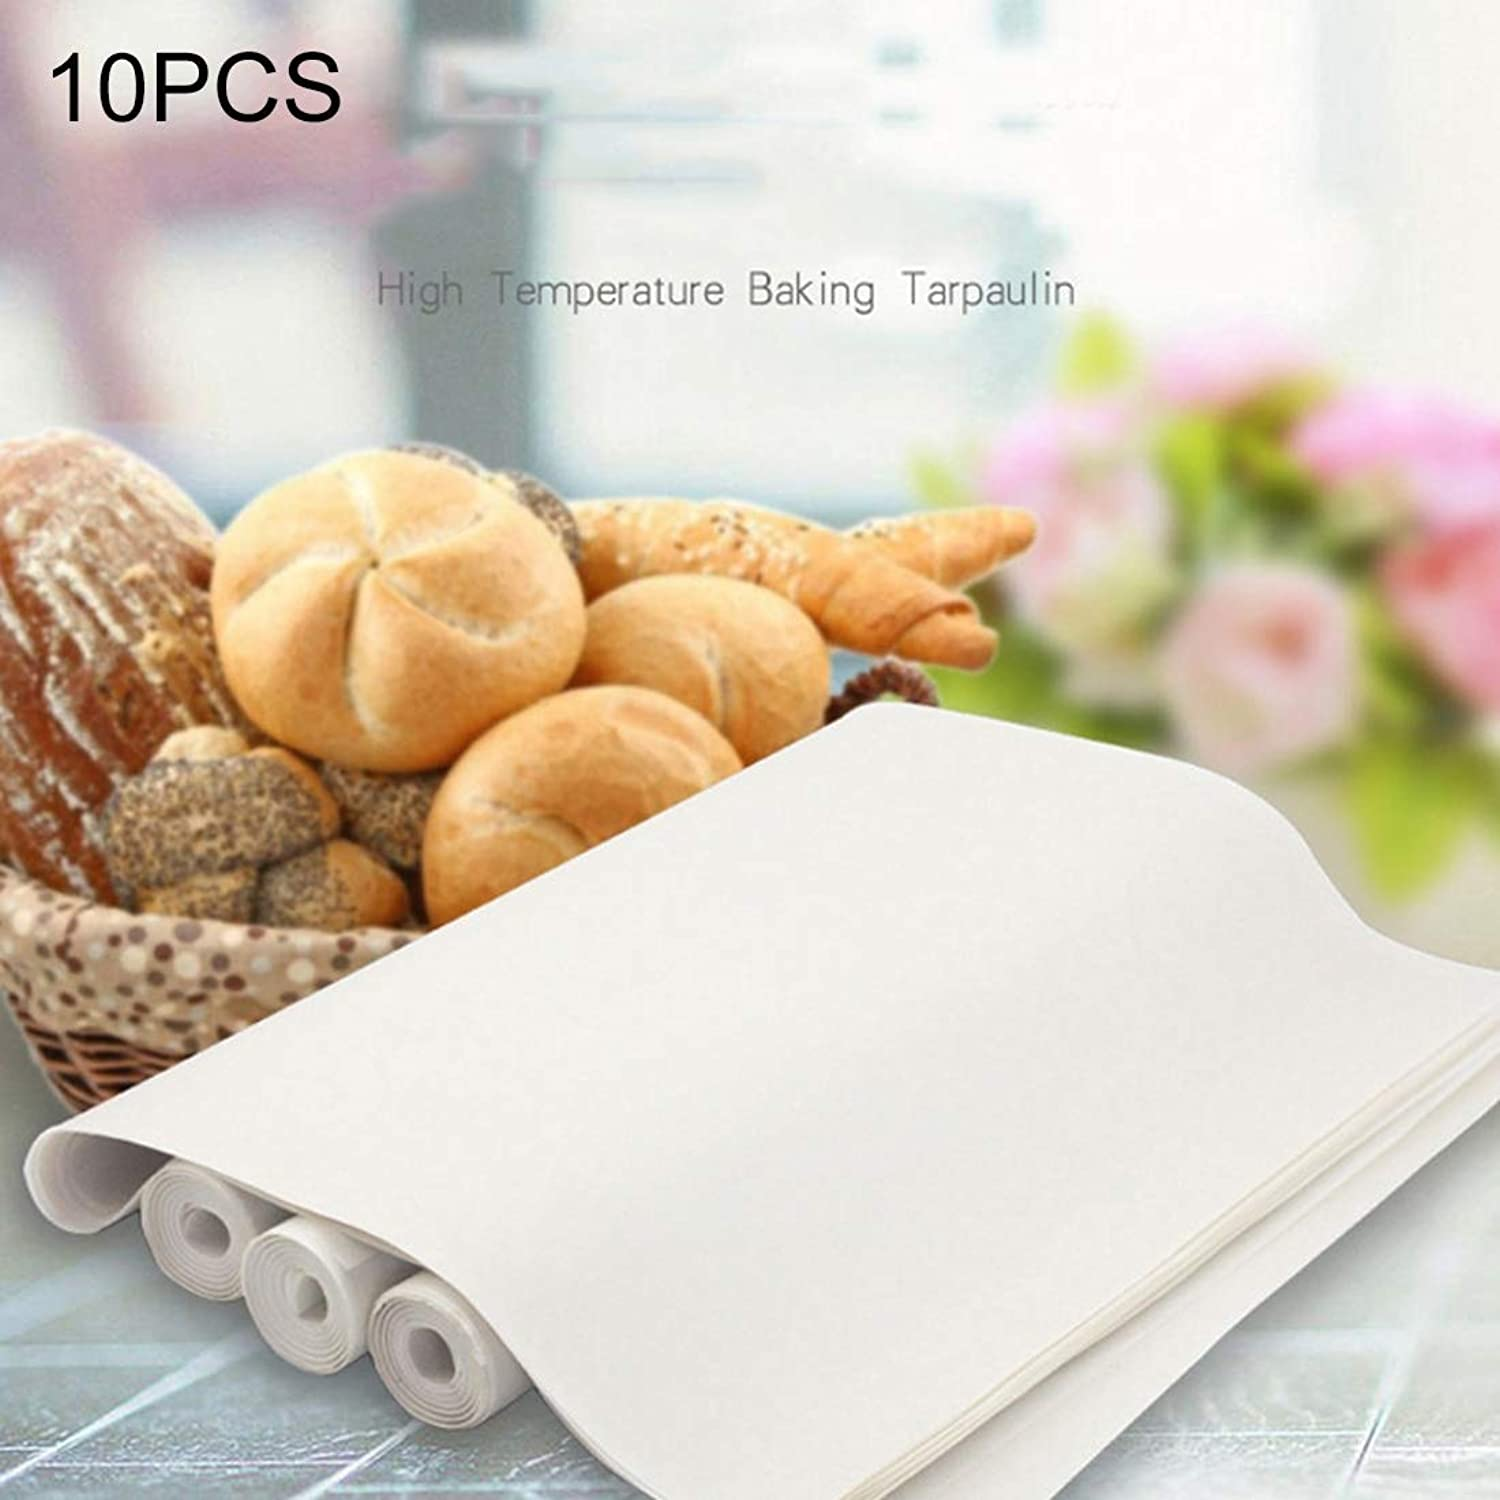 Coffee Leaves   2Pcs Bathroom Bath mat Set Non Slip 45x50cm and 50x80cm 17.71x19.68in and 19.68x31.49in